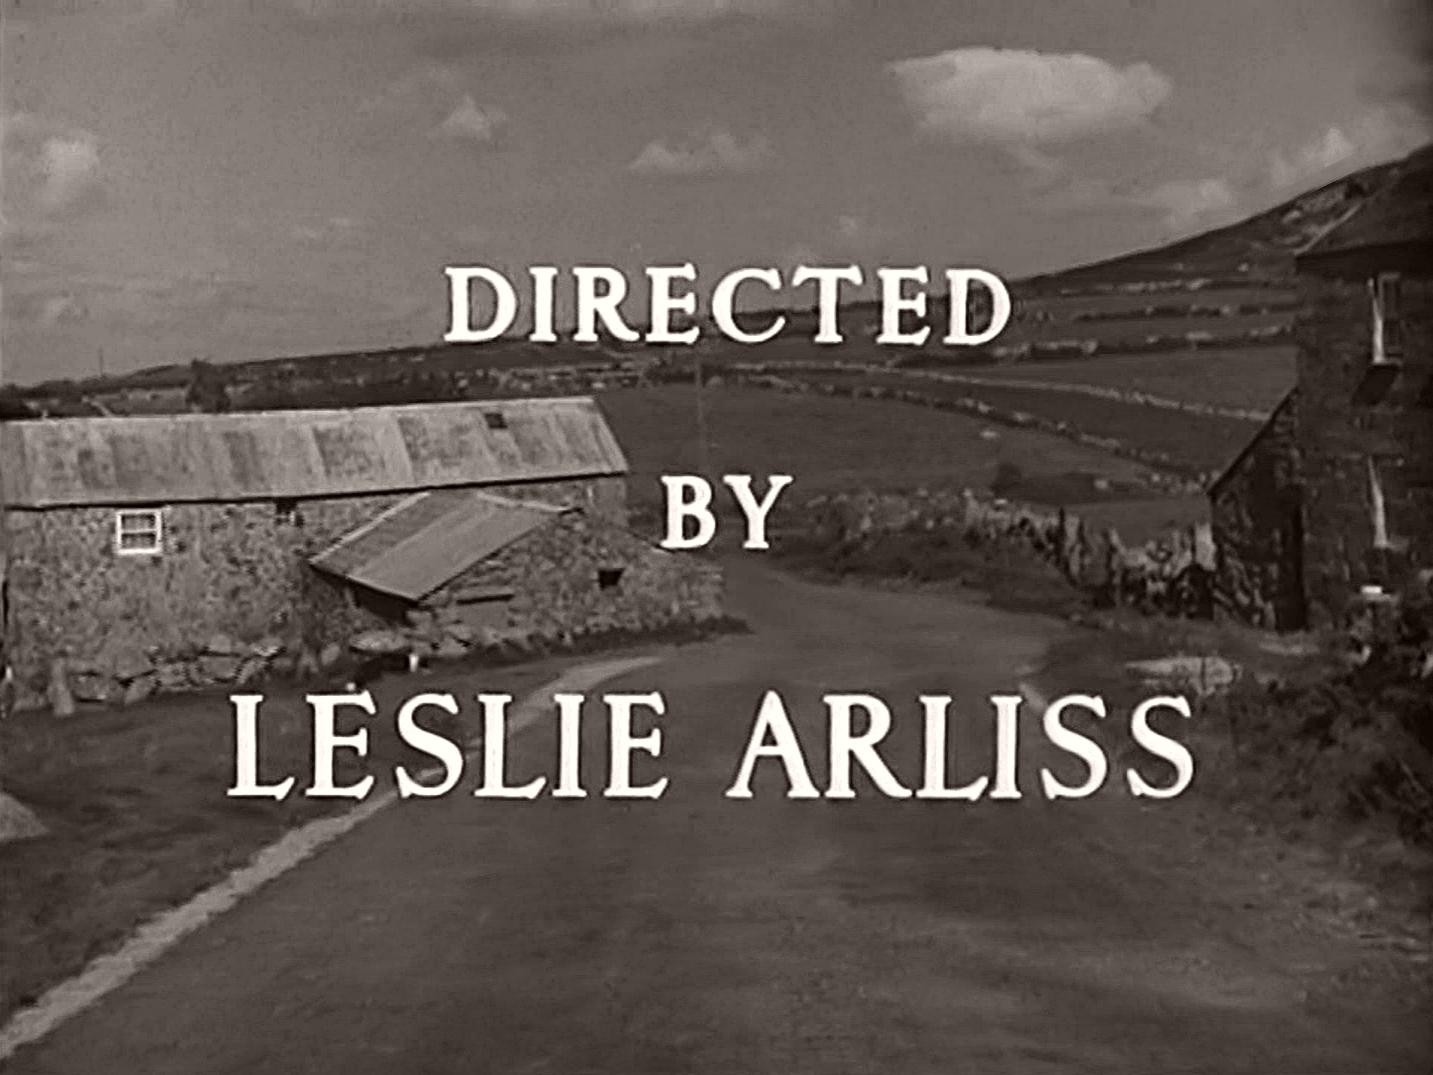 Main title from Love Story (1944) (12). Directed by Leslie Arliss